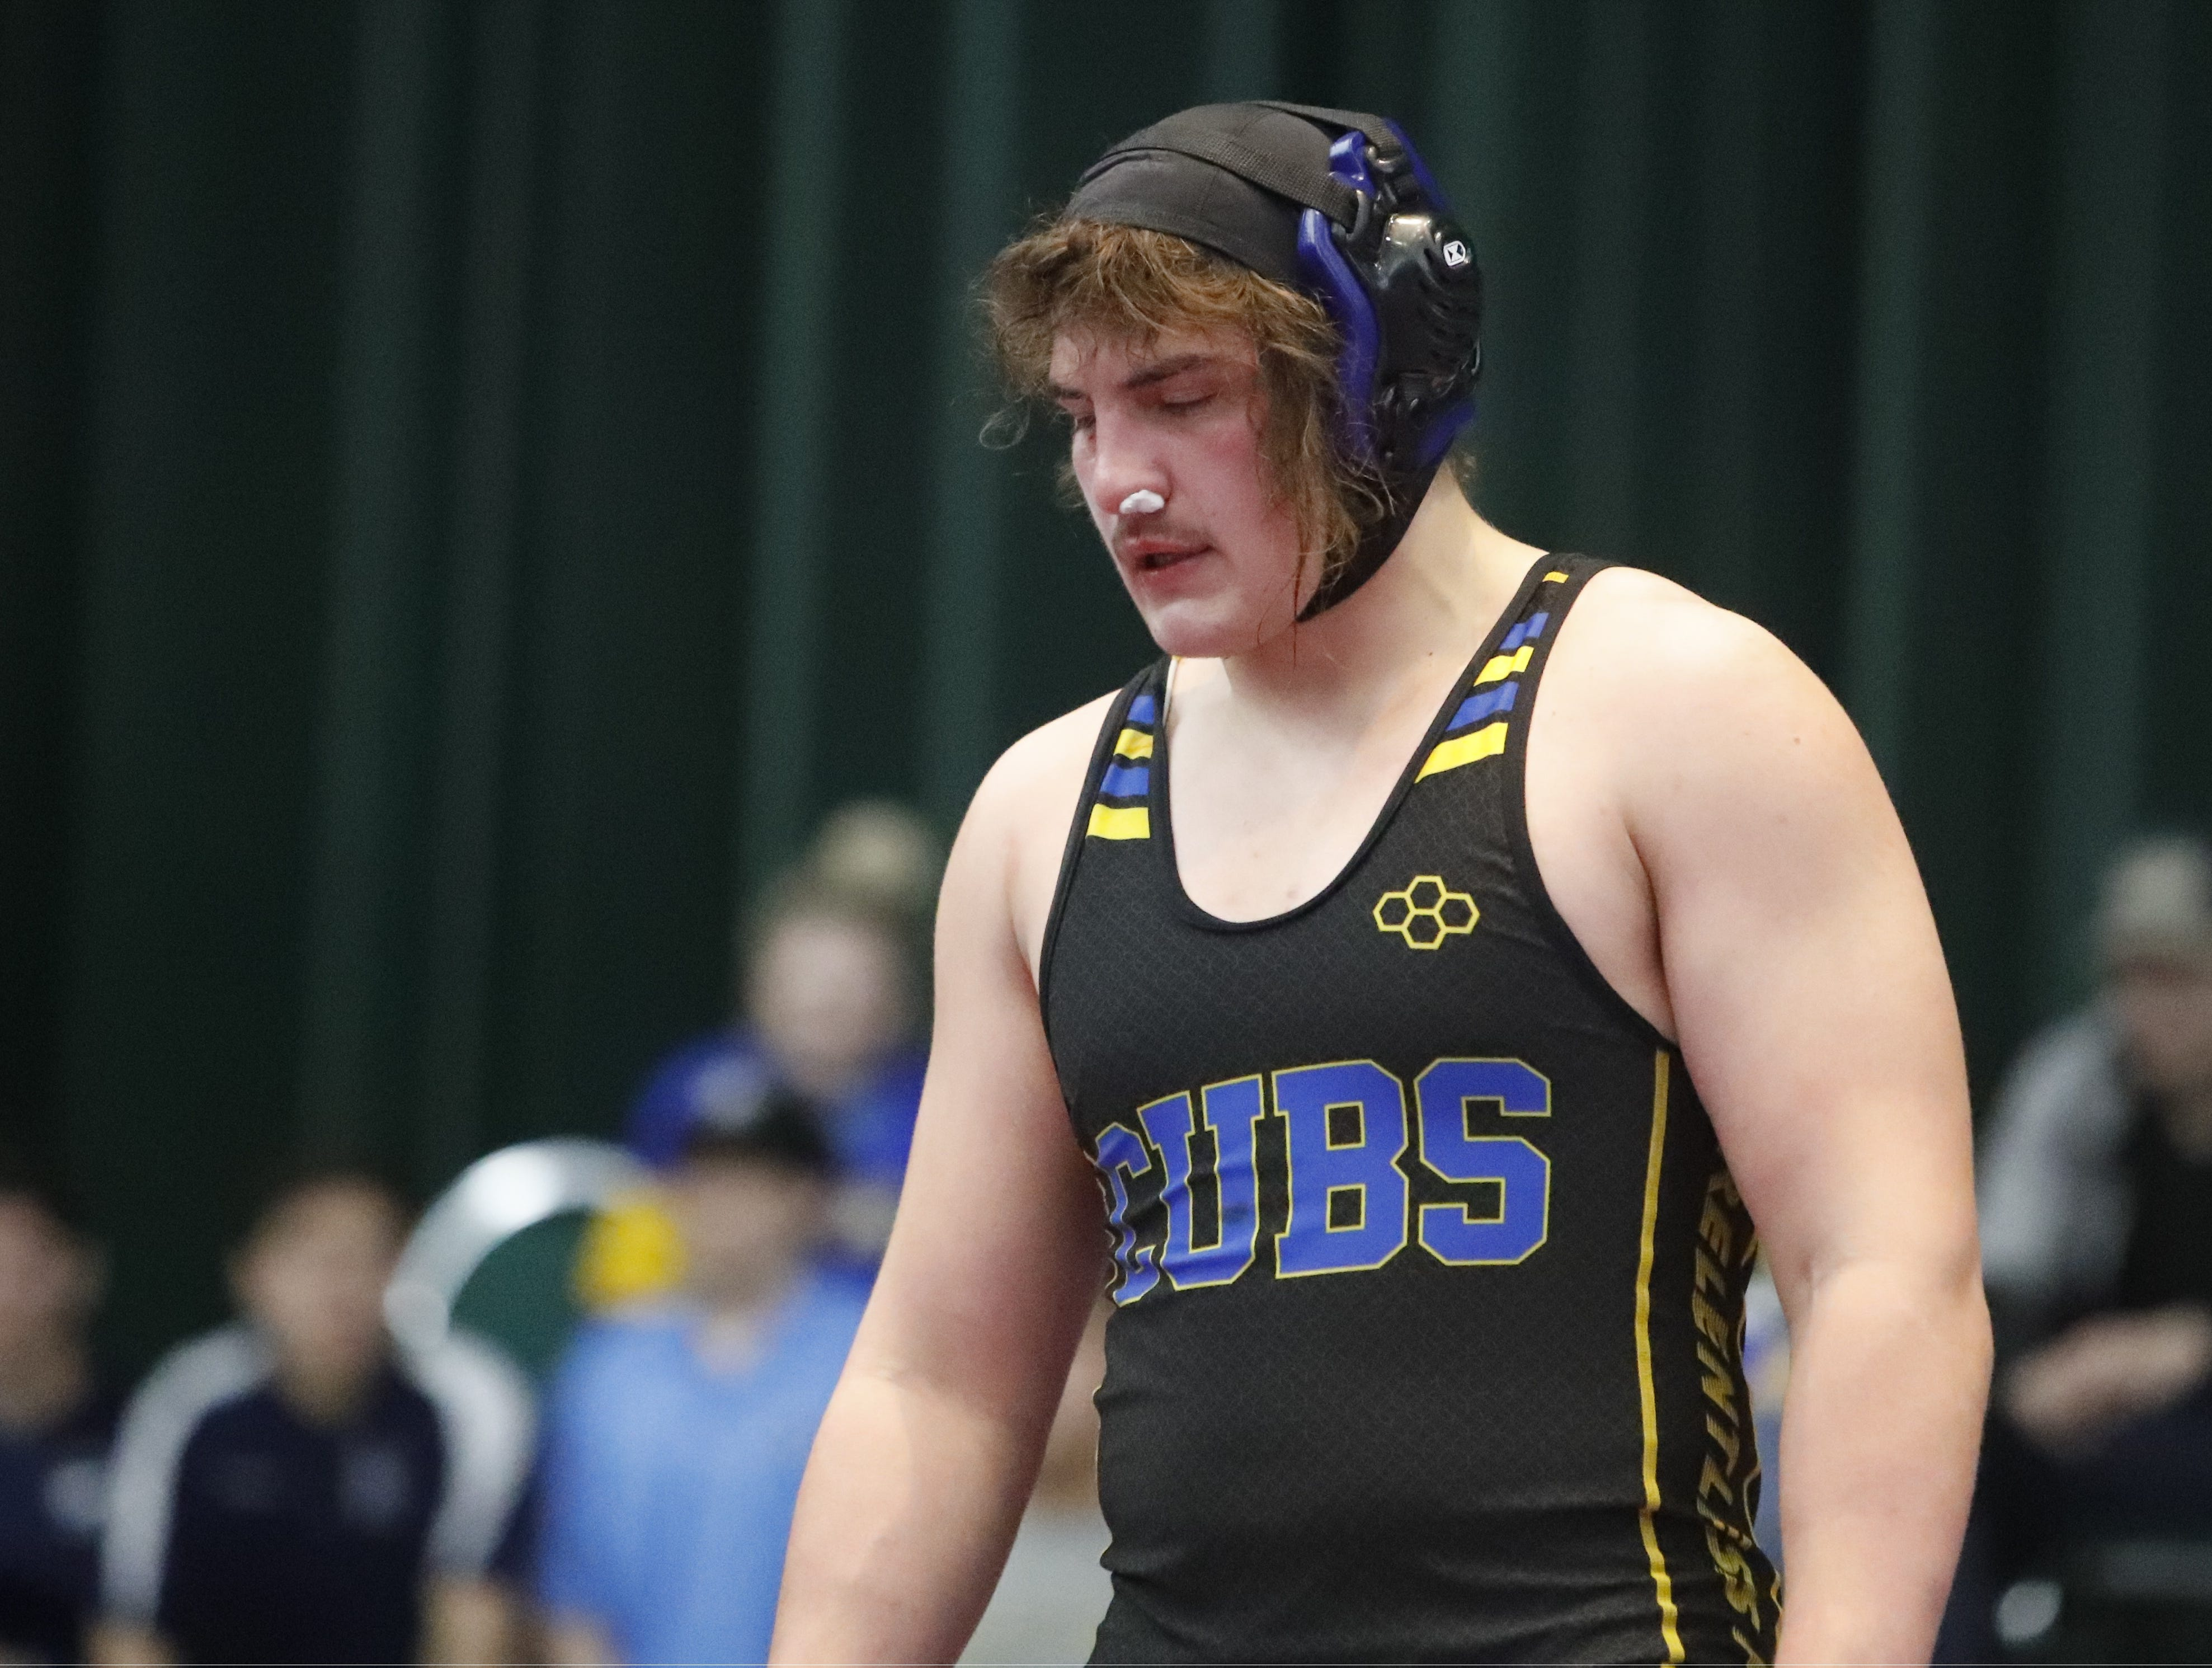 Anderson 182-pound wrestler Cody Crawford walks around the mat between rounds at Northern Section championships on Friday, Feb. 15, at the Redding Civic Auditorium.